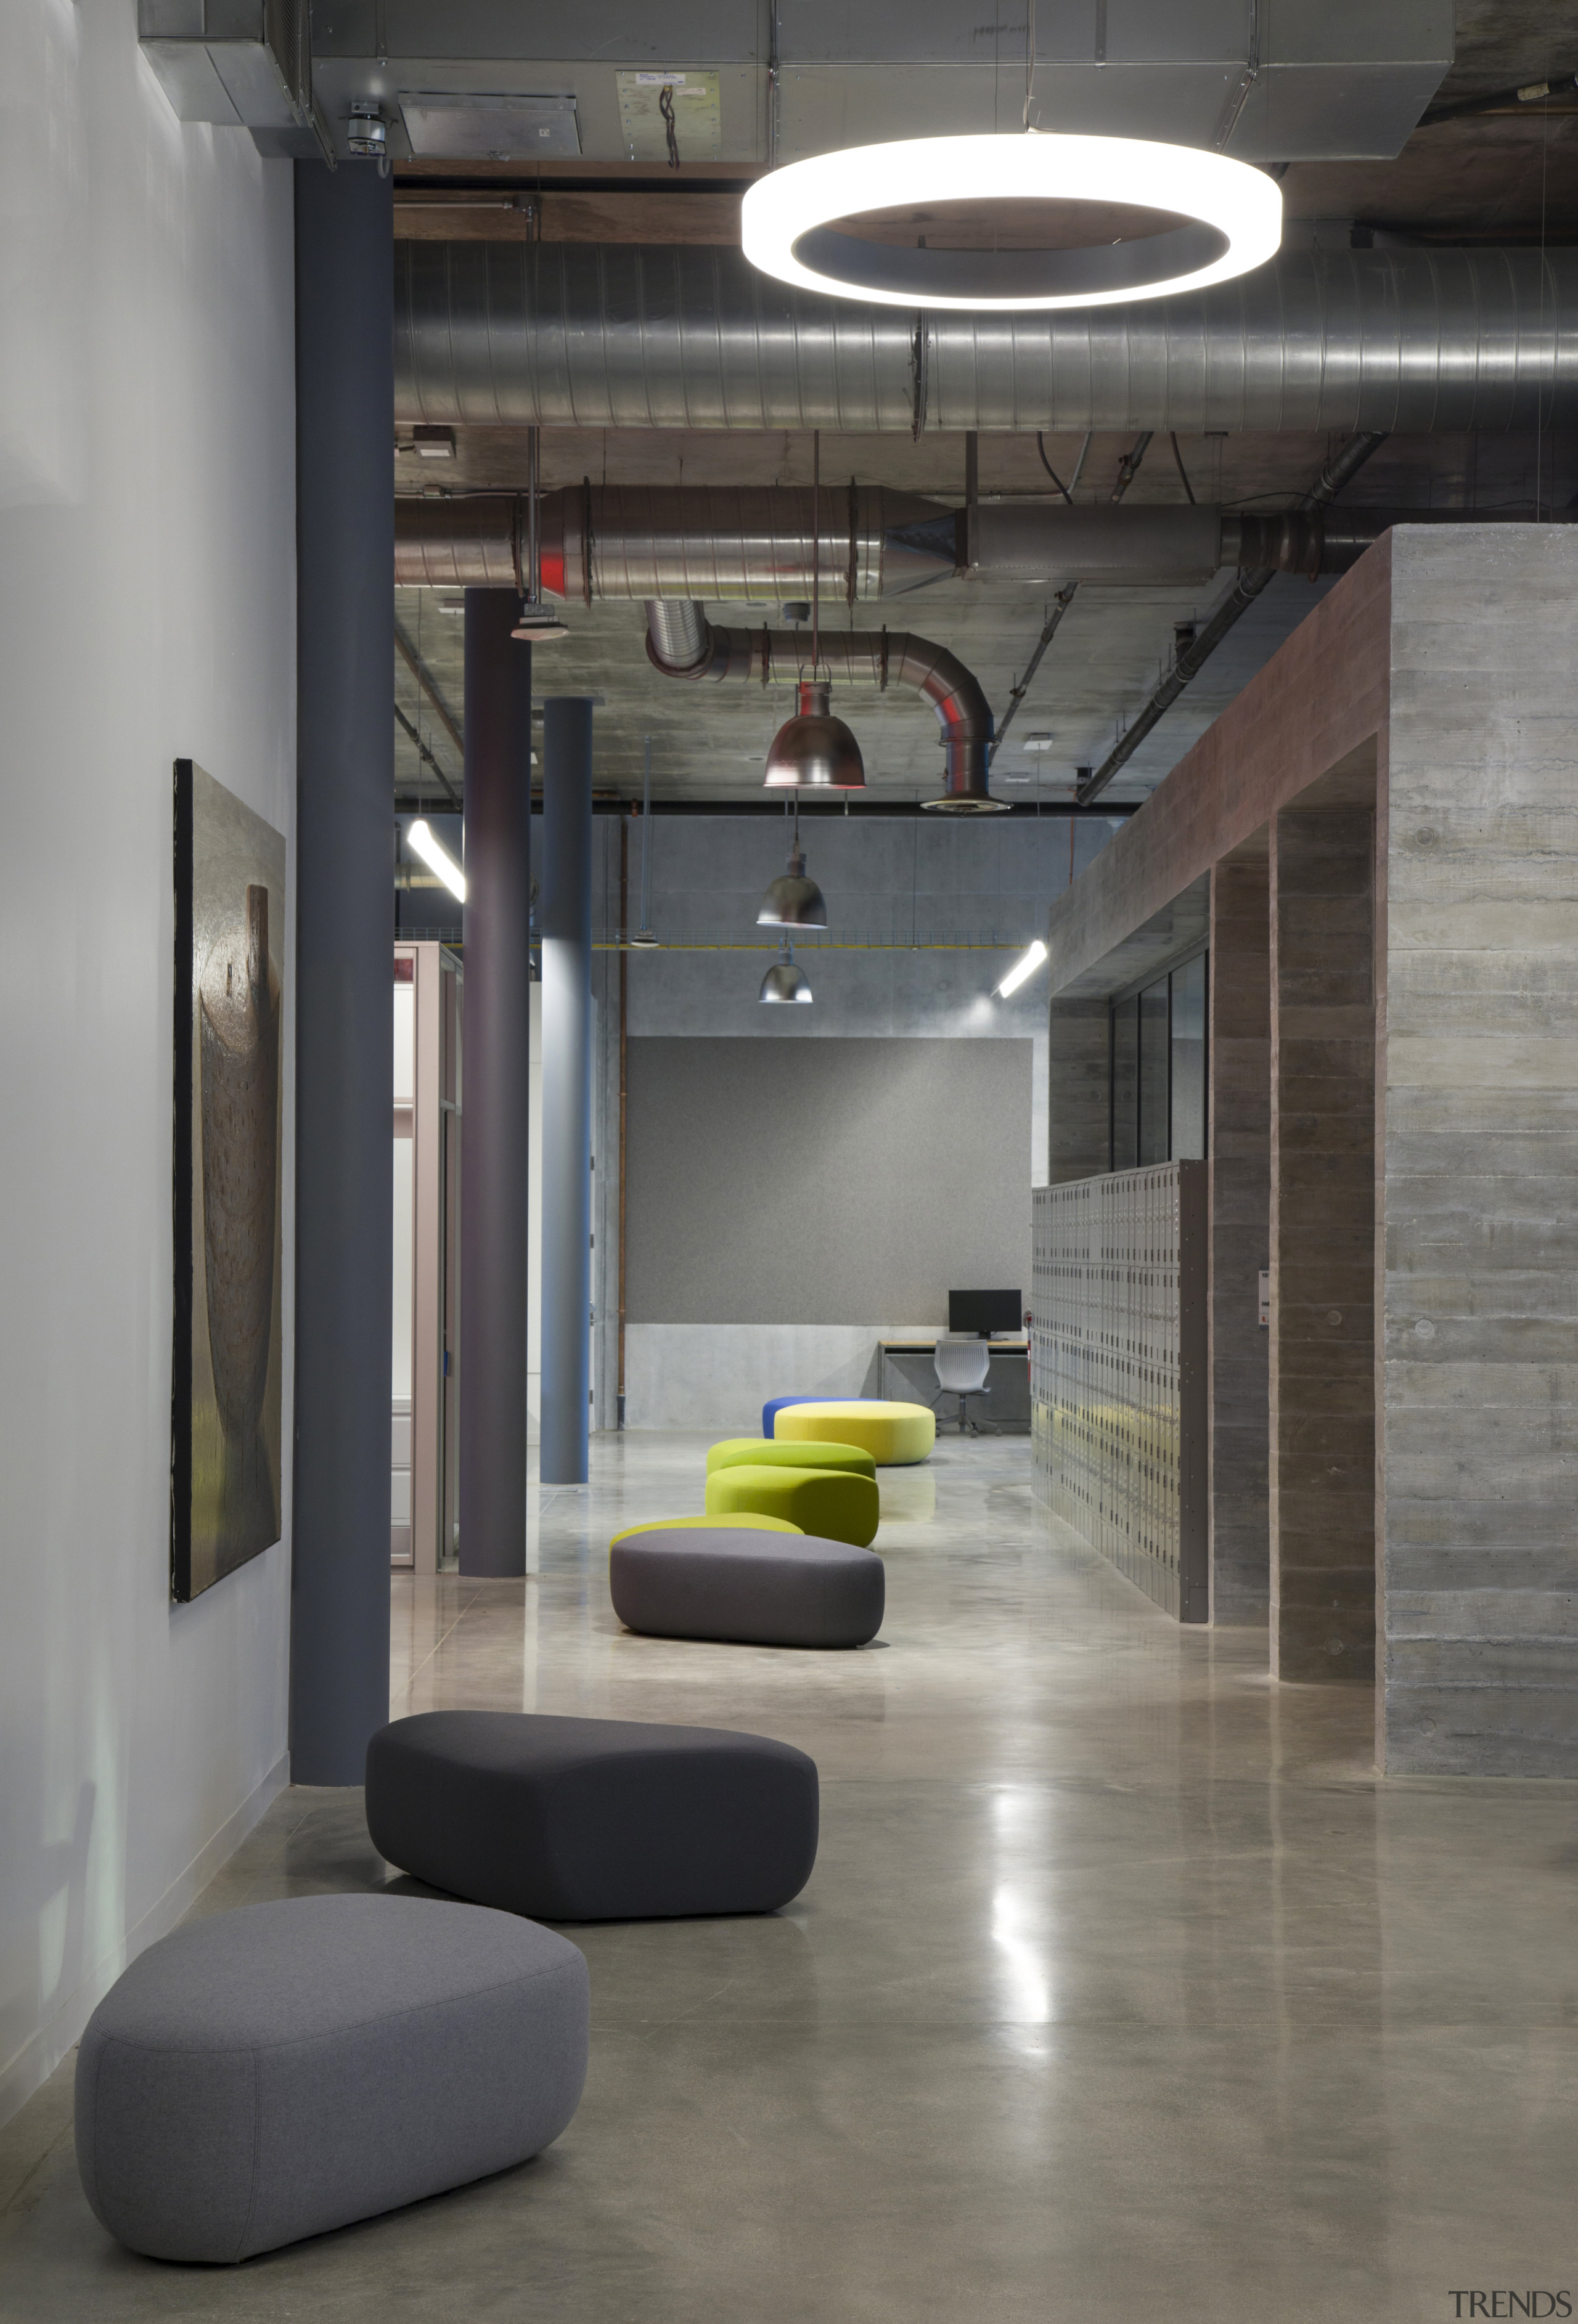 Exposed services work well with the pared back, architecture, building, ceiling, design, flooring, furniture, interior design, light fixture, lighting, lobby, loft, tile, wall, black, exposed services